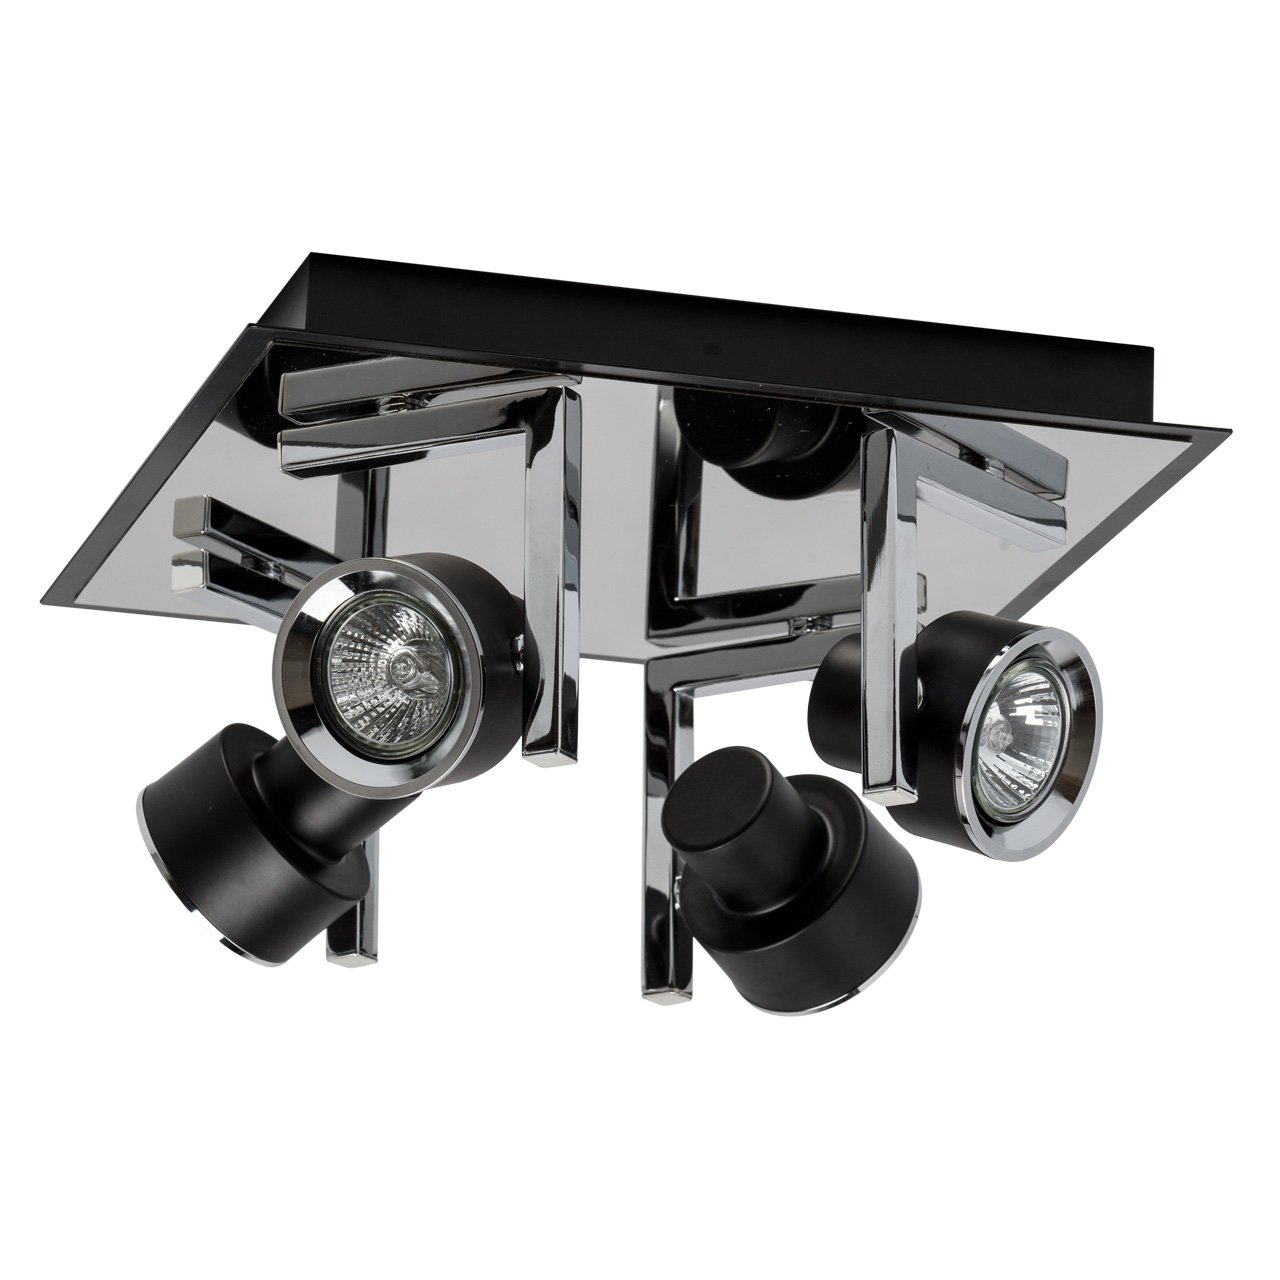 MW-Light Arno Wall Spotlight Black Coffee Chrome Metal Colour in Retro Futuristic Style for Living Room, Bedroom or Hallway, 1 Bulb-incl, GU10 1 * 50W 230V